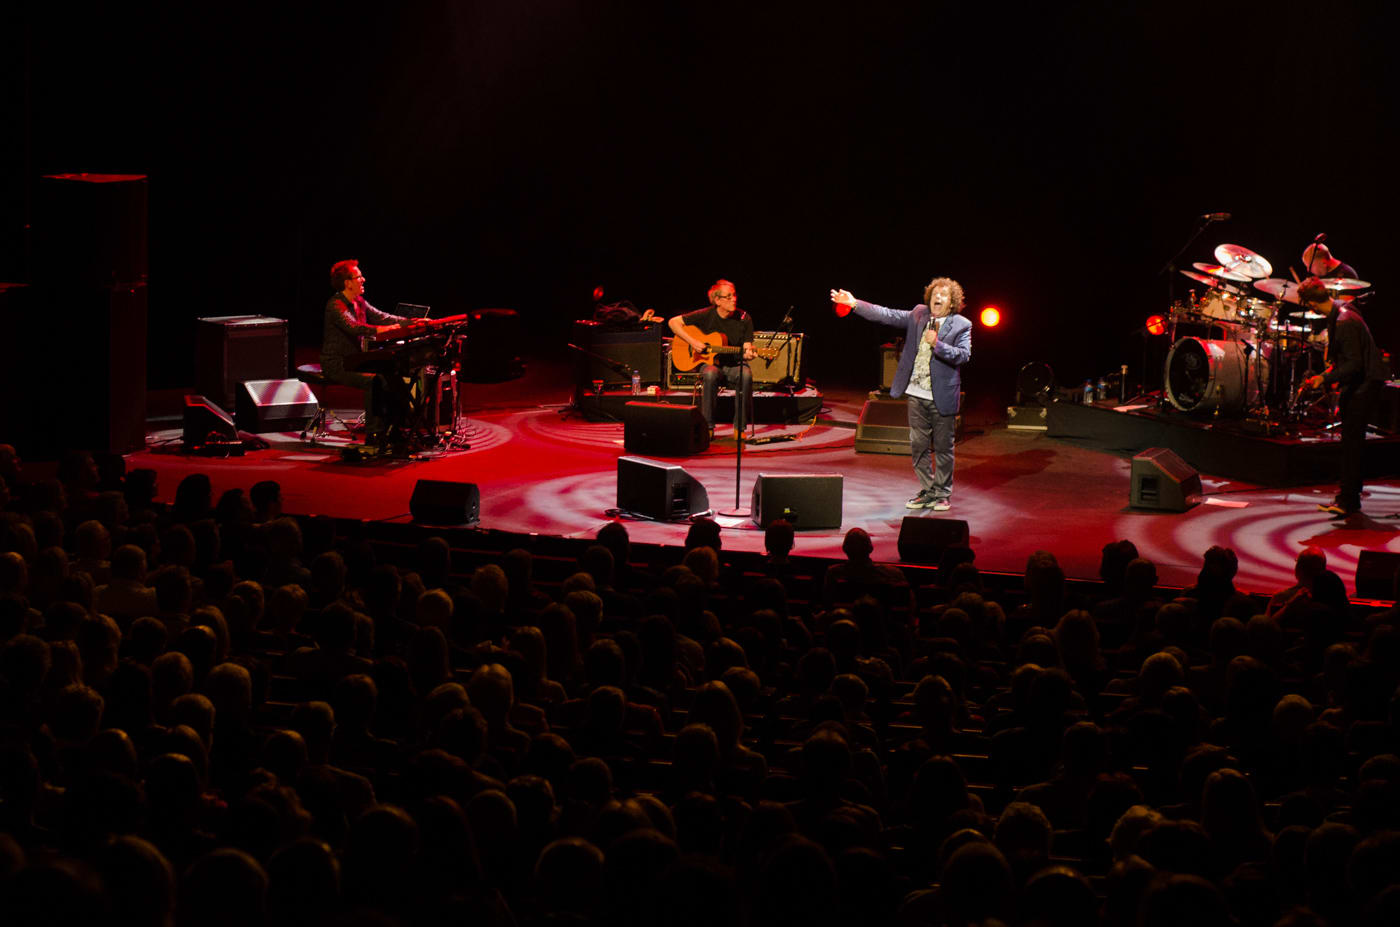 Leo Sayer at Bord Gais Energy Theatre by Sean Smyth (16-10-15) (44 of 129)